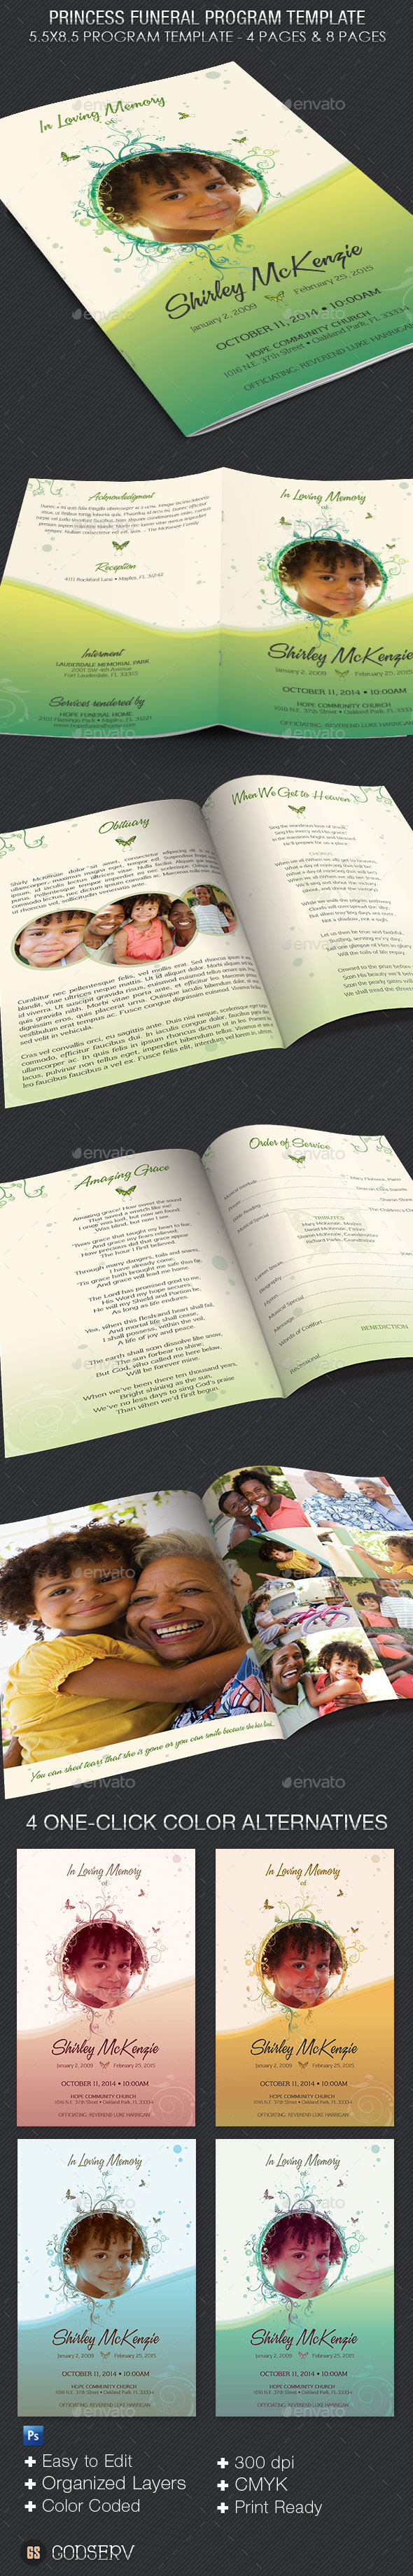 GraphicRiver Princess Funeral Program Template 11516153